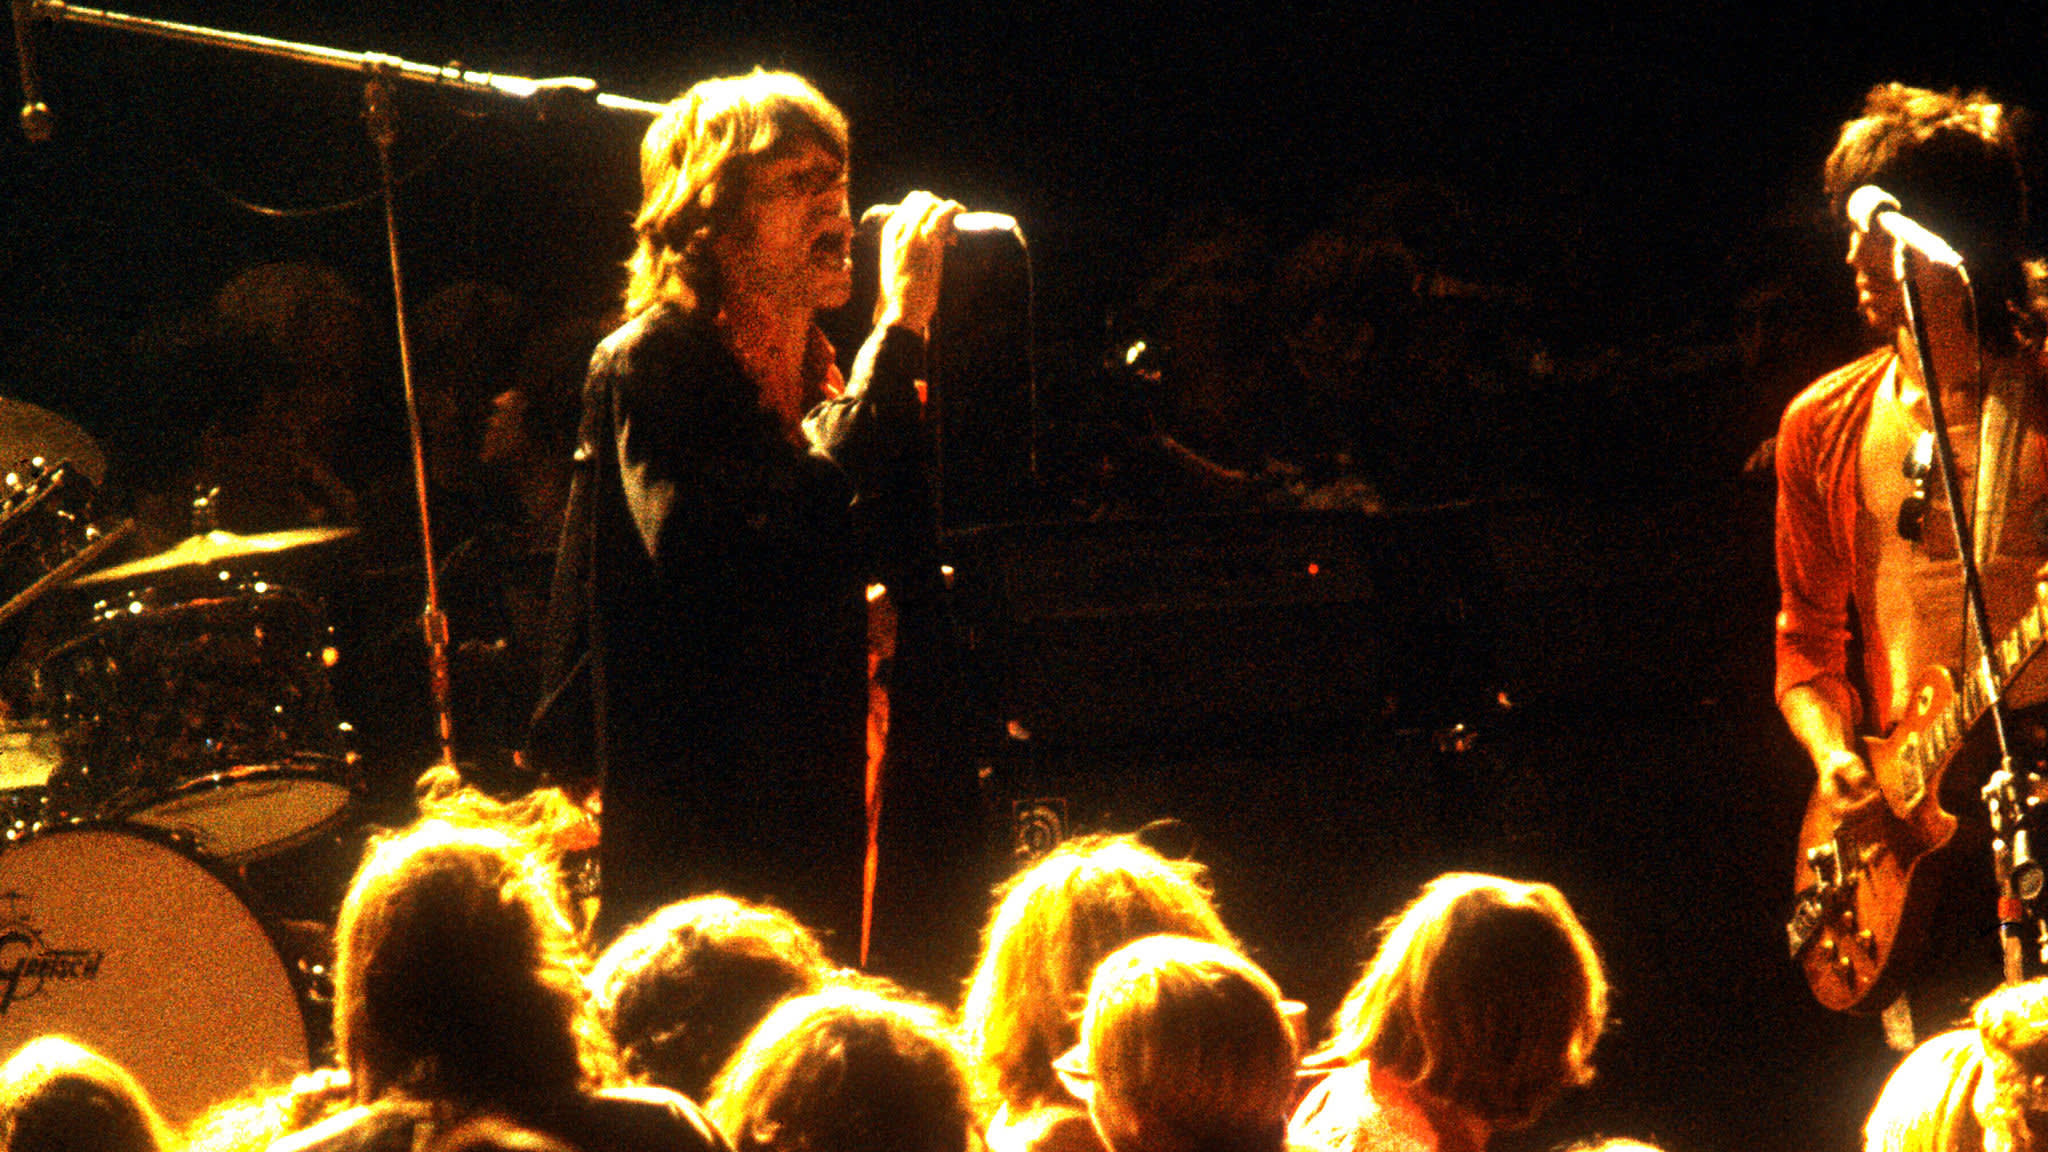 Gimme Shelter — The Rolling Stones' 1969 song signalled a